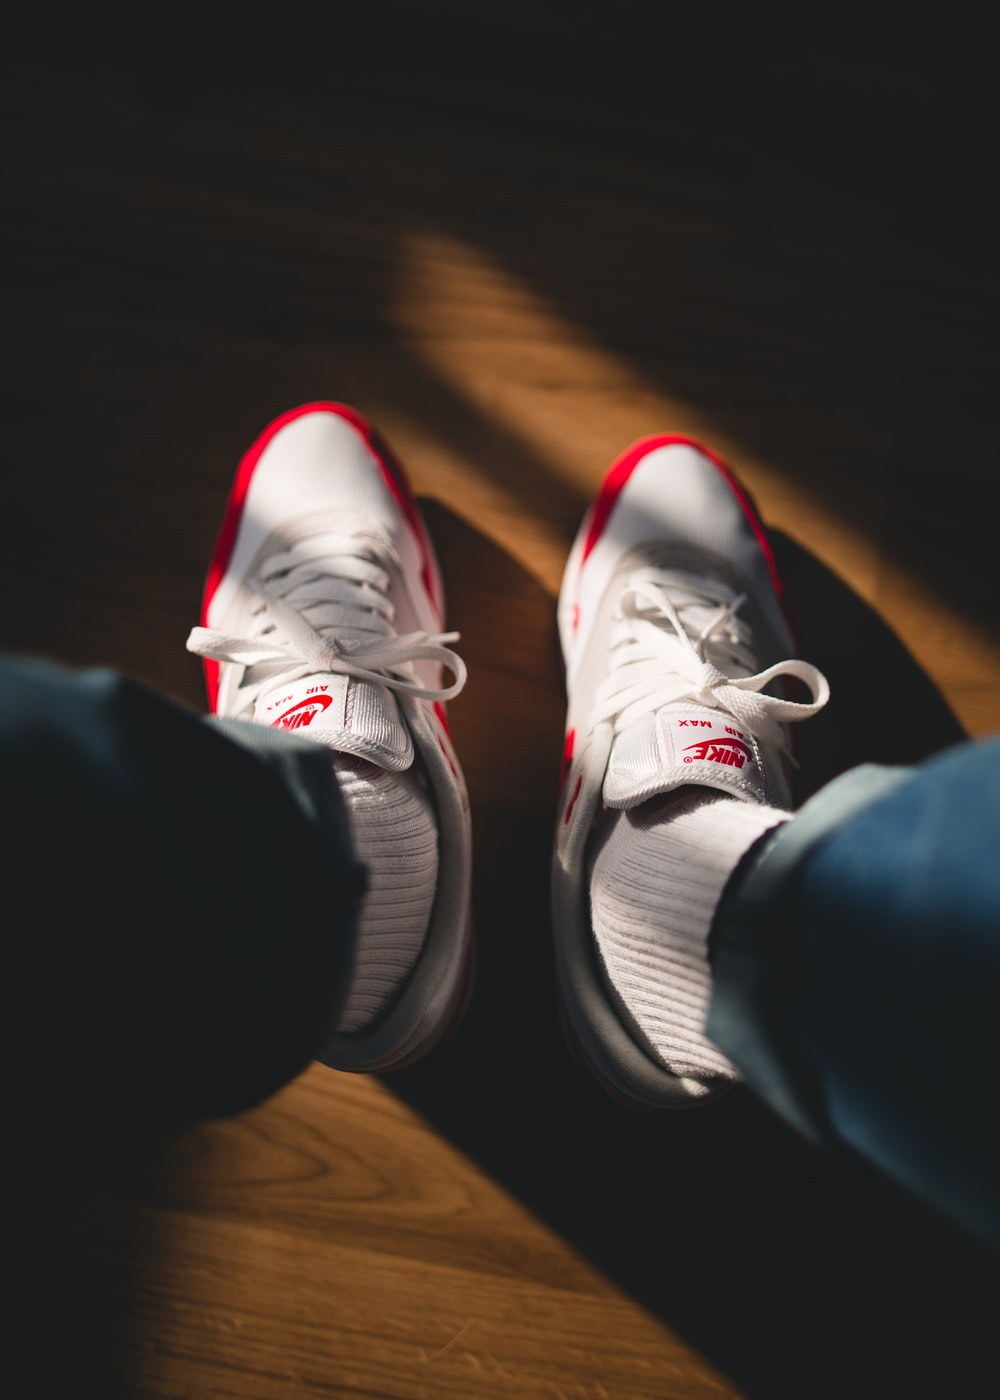 Person Holding White And Red Nike Running Shoes Photo Free